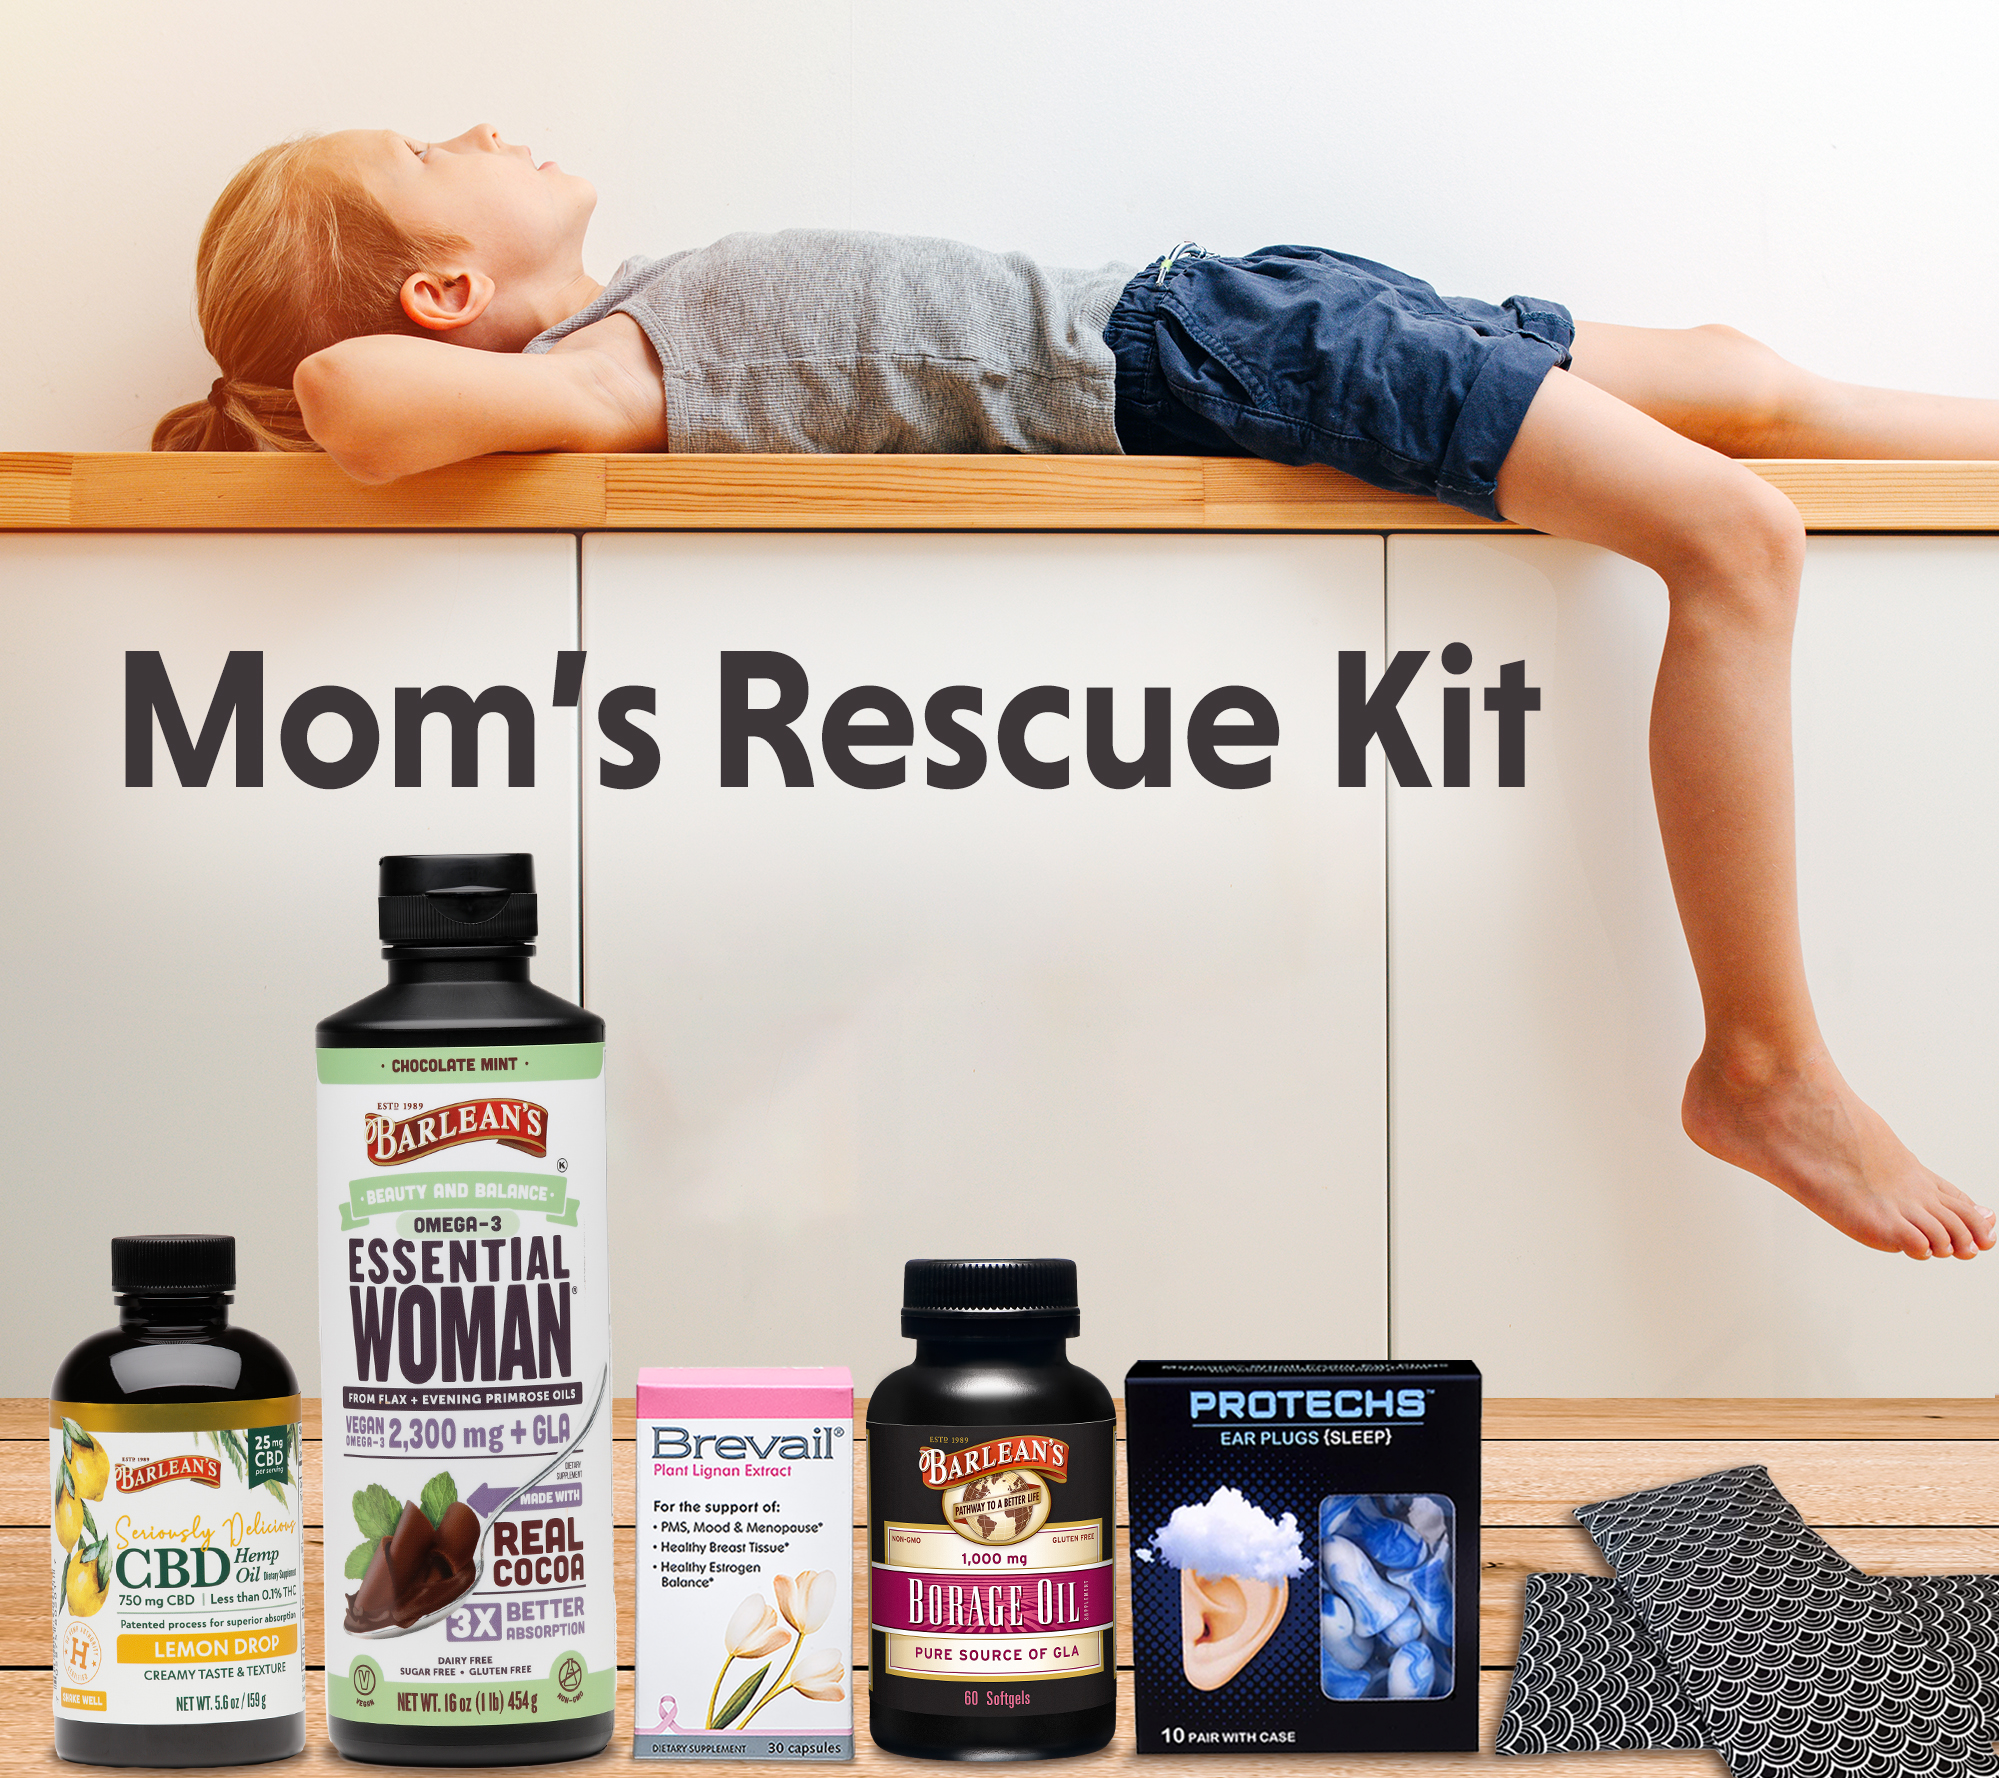 May 2020 giveaway products with kid